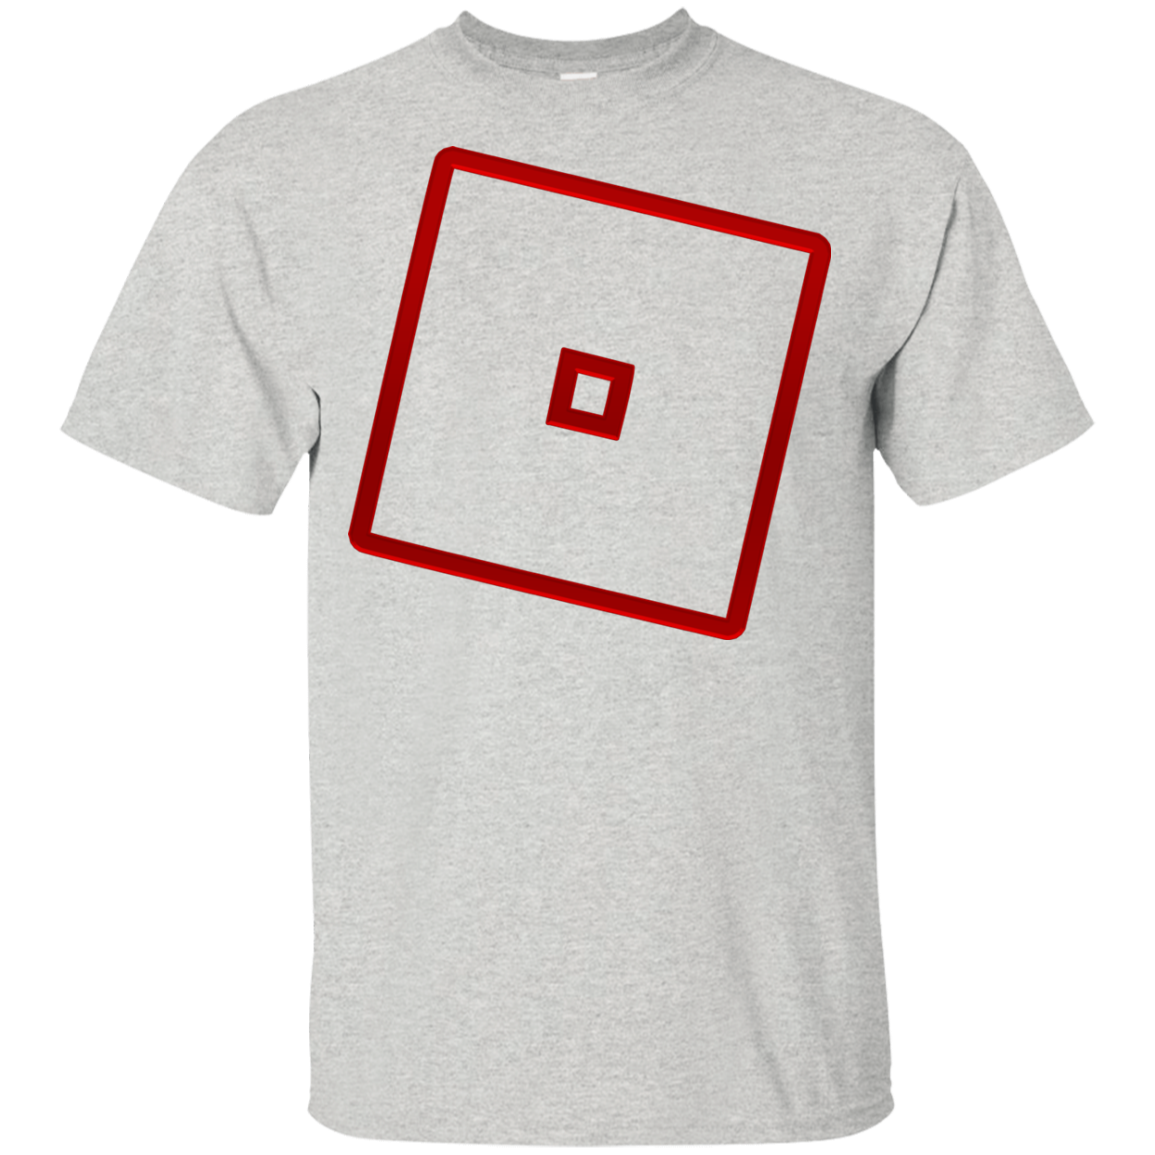 how to make your t shirt transparent in roblox